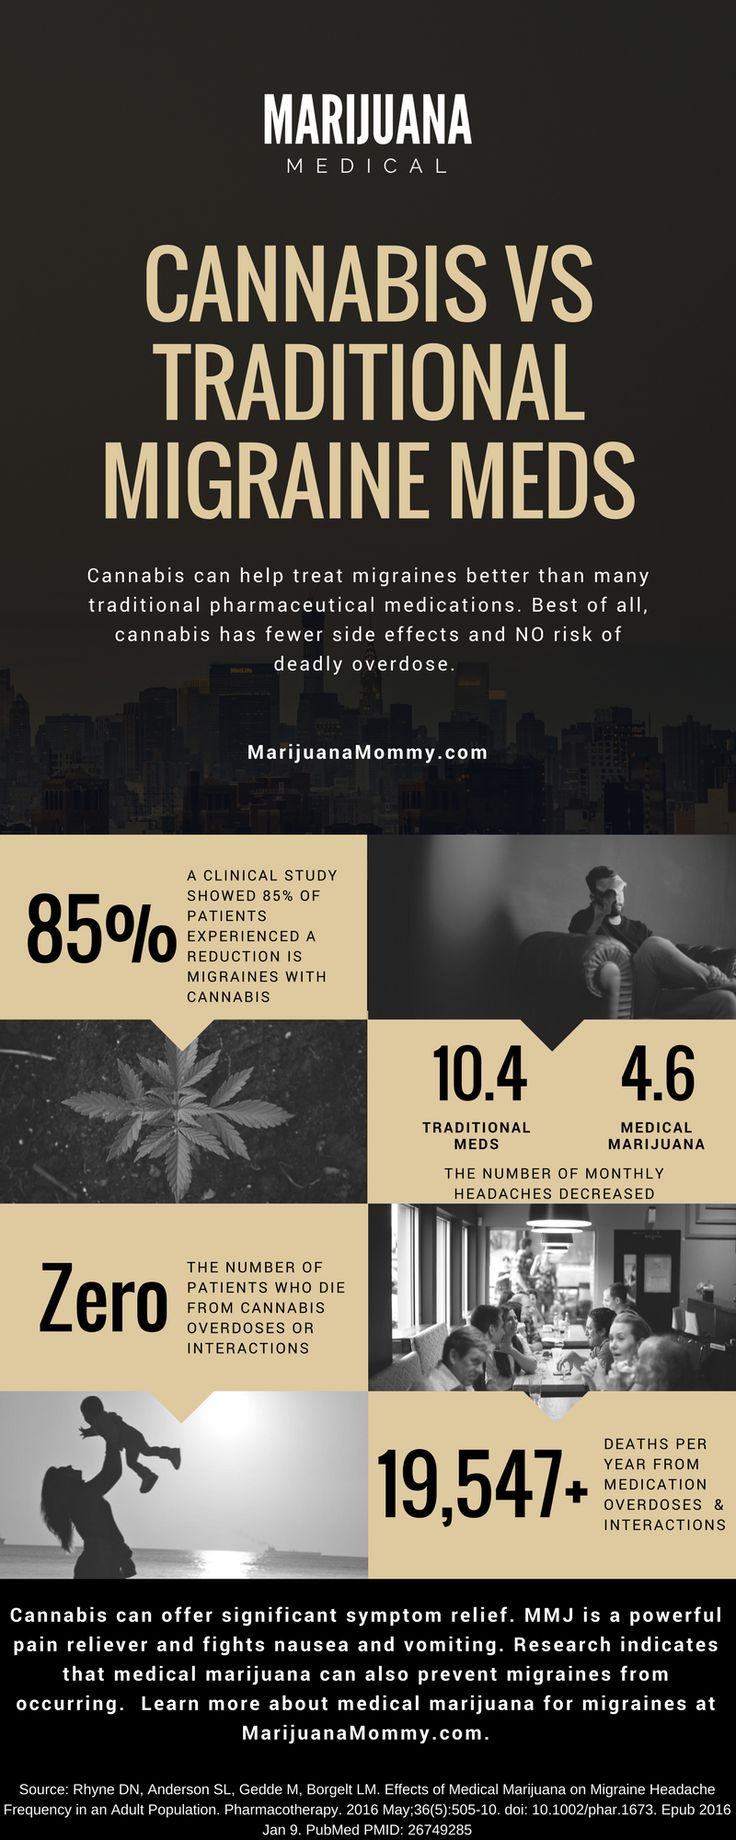 Can cannabis help migraines? Here's the science behind why medical marijuana relieves headaches and the differences between MMJ vs Traditional Migraine Meds #headachechart